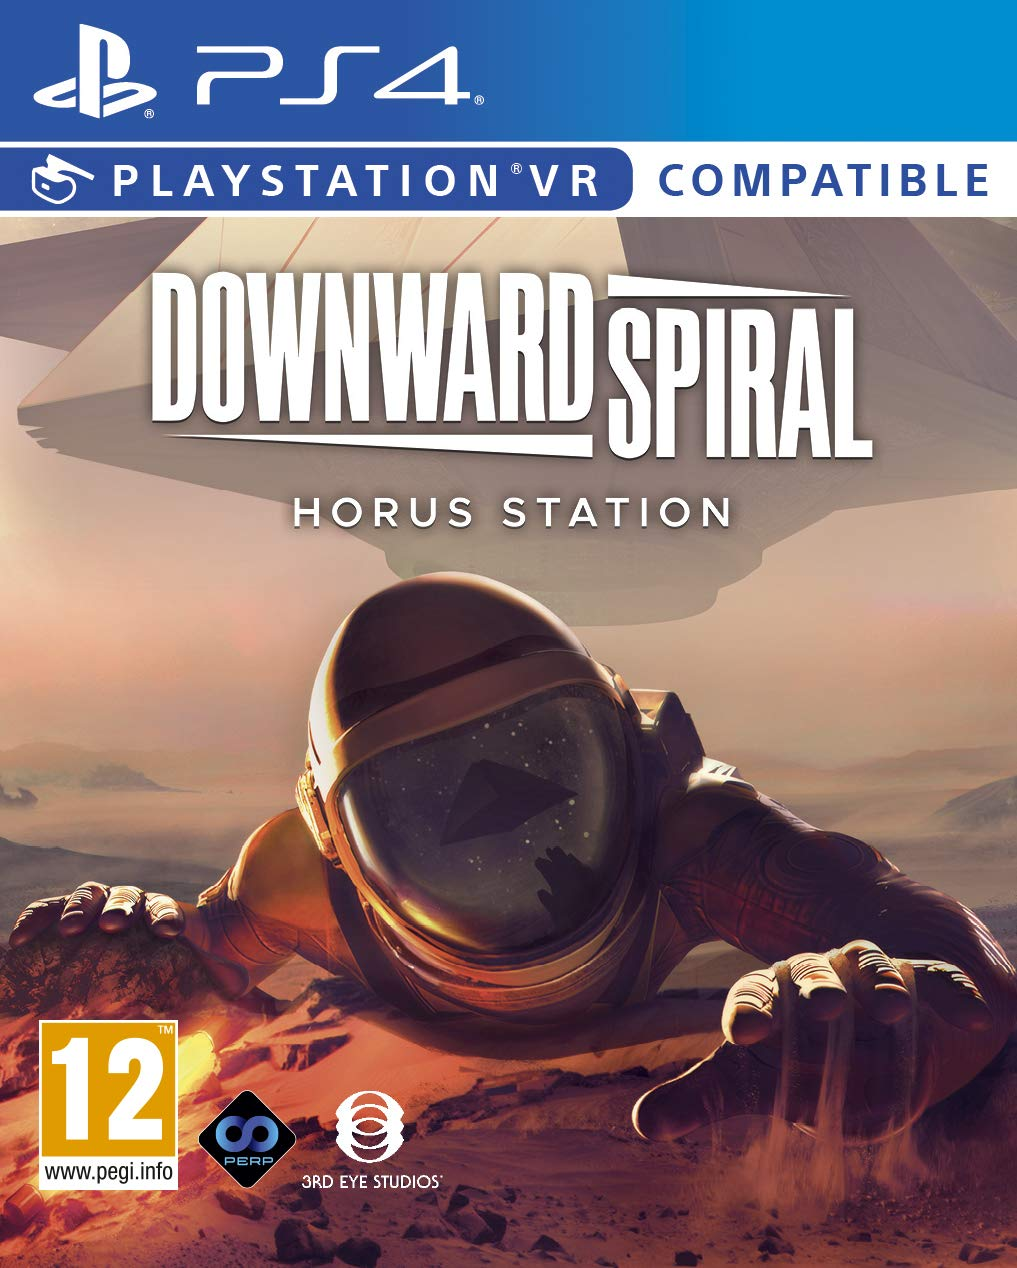 Downward Spiral: Horus Station (PSVR) - PlayStation 4 ...